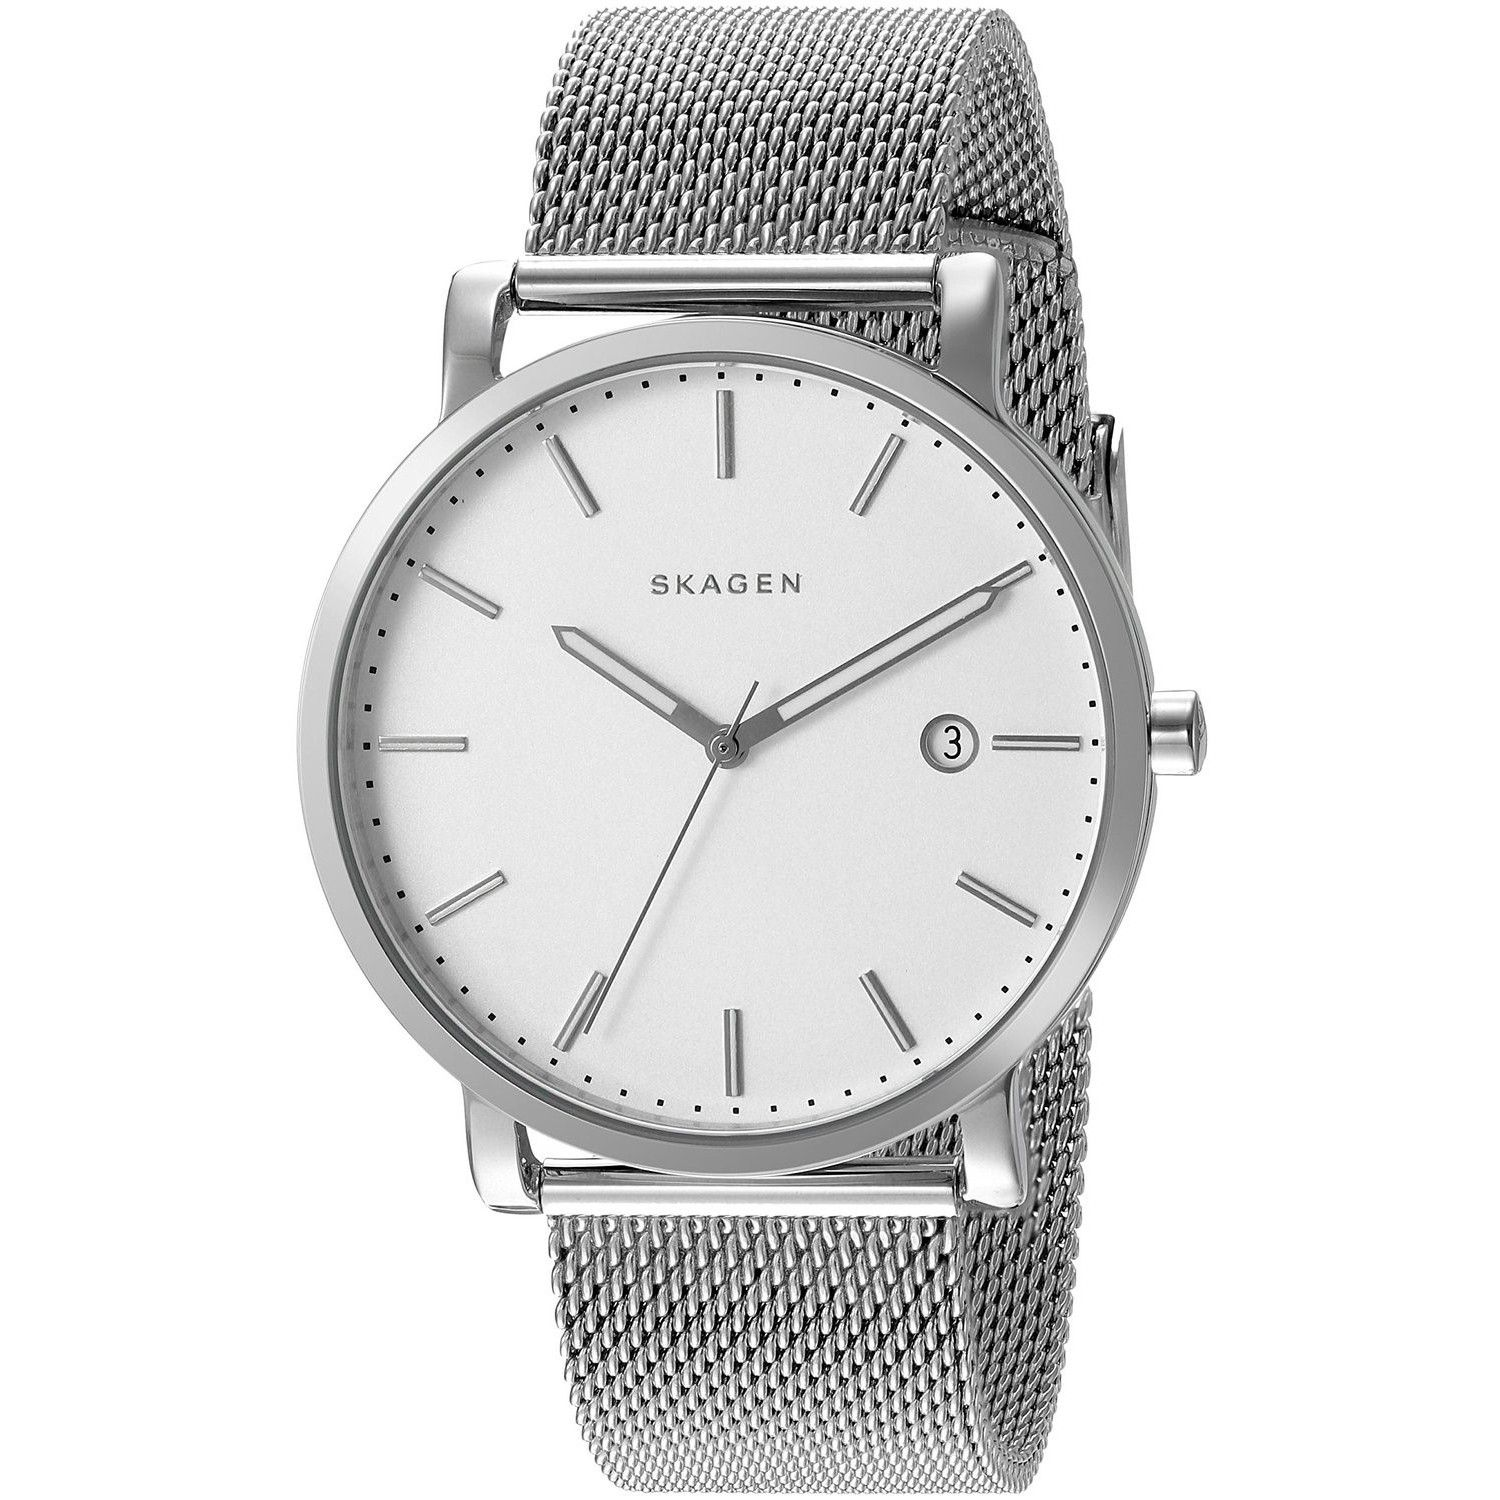 jewelry overstock women quartz shipping s skagen watches womens hagen stainless fashion product watch steel today silver free